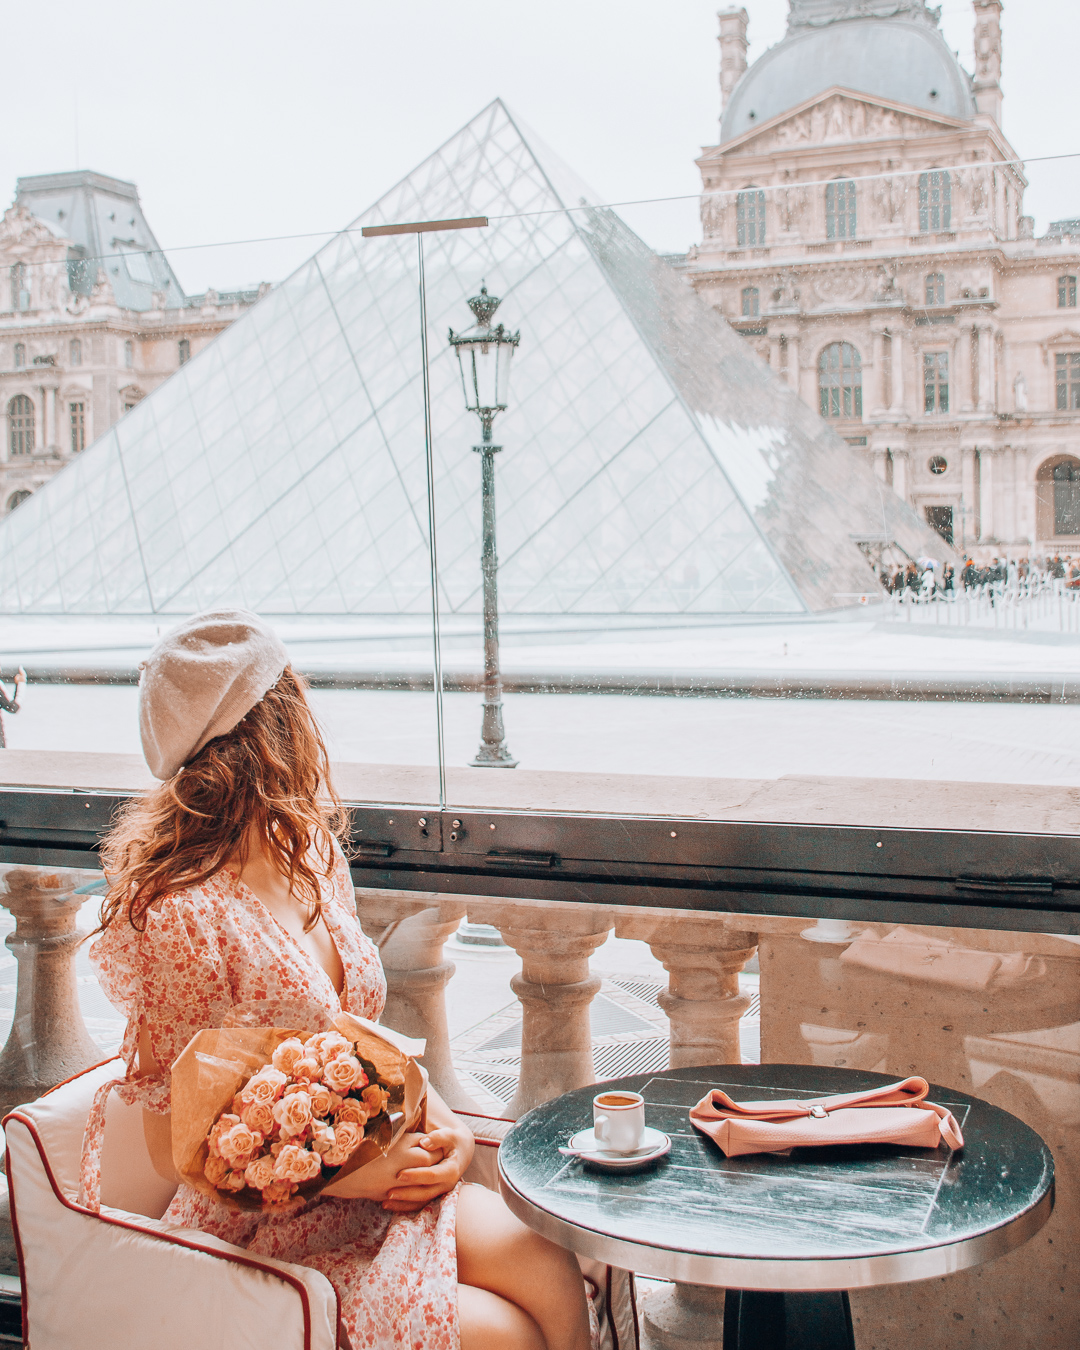 A view of the Louvre in Paris